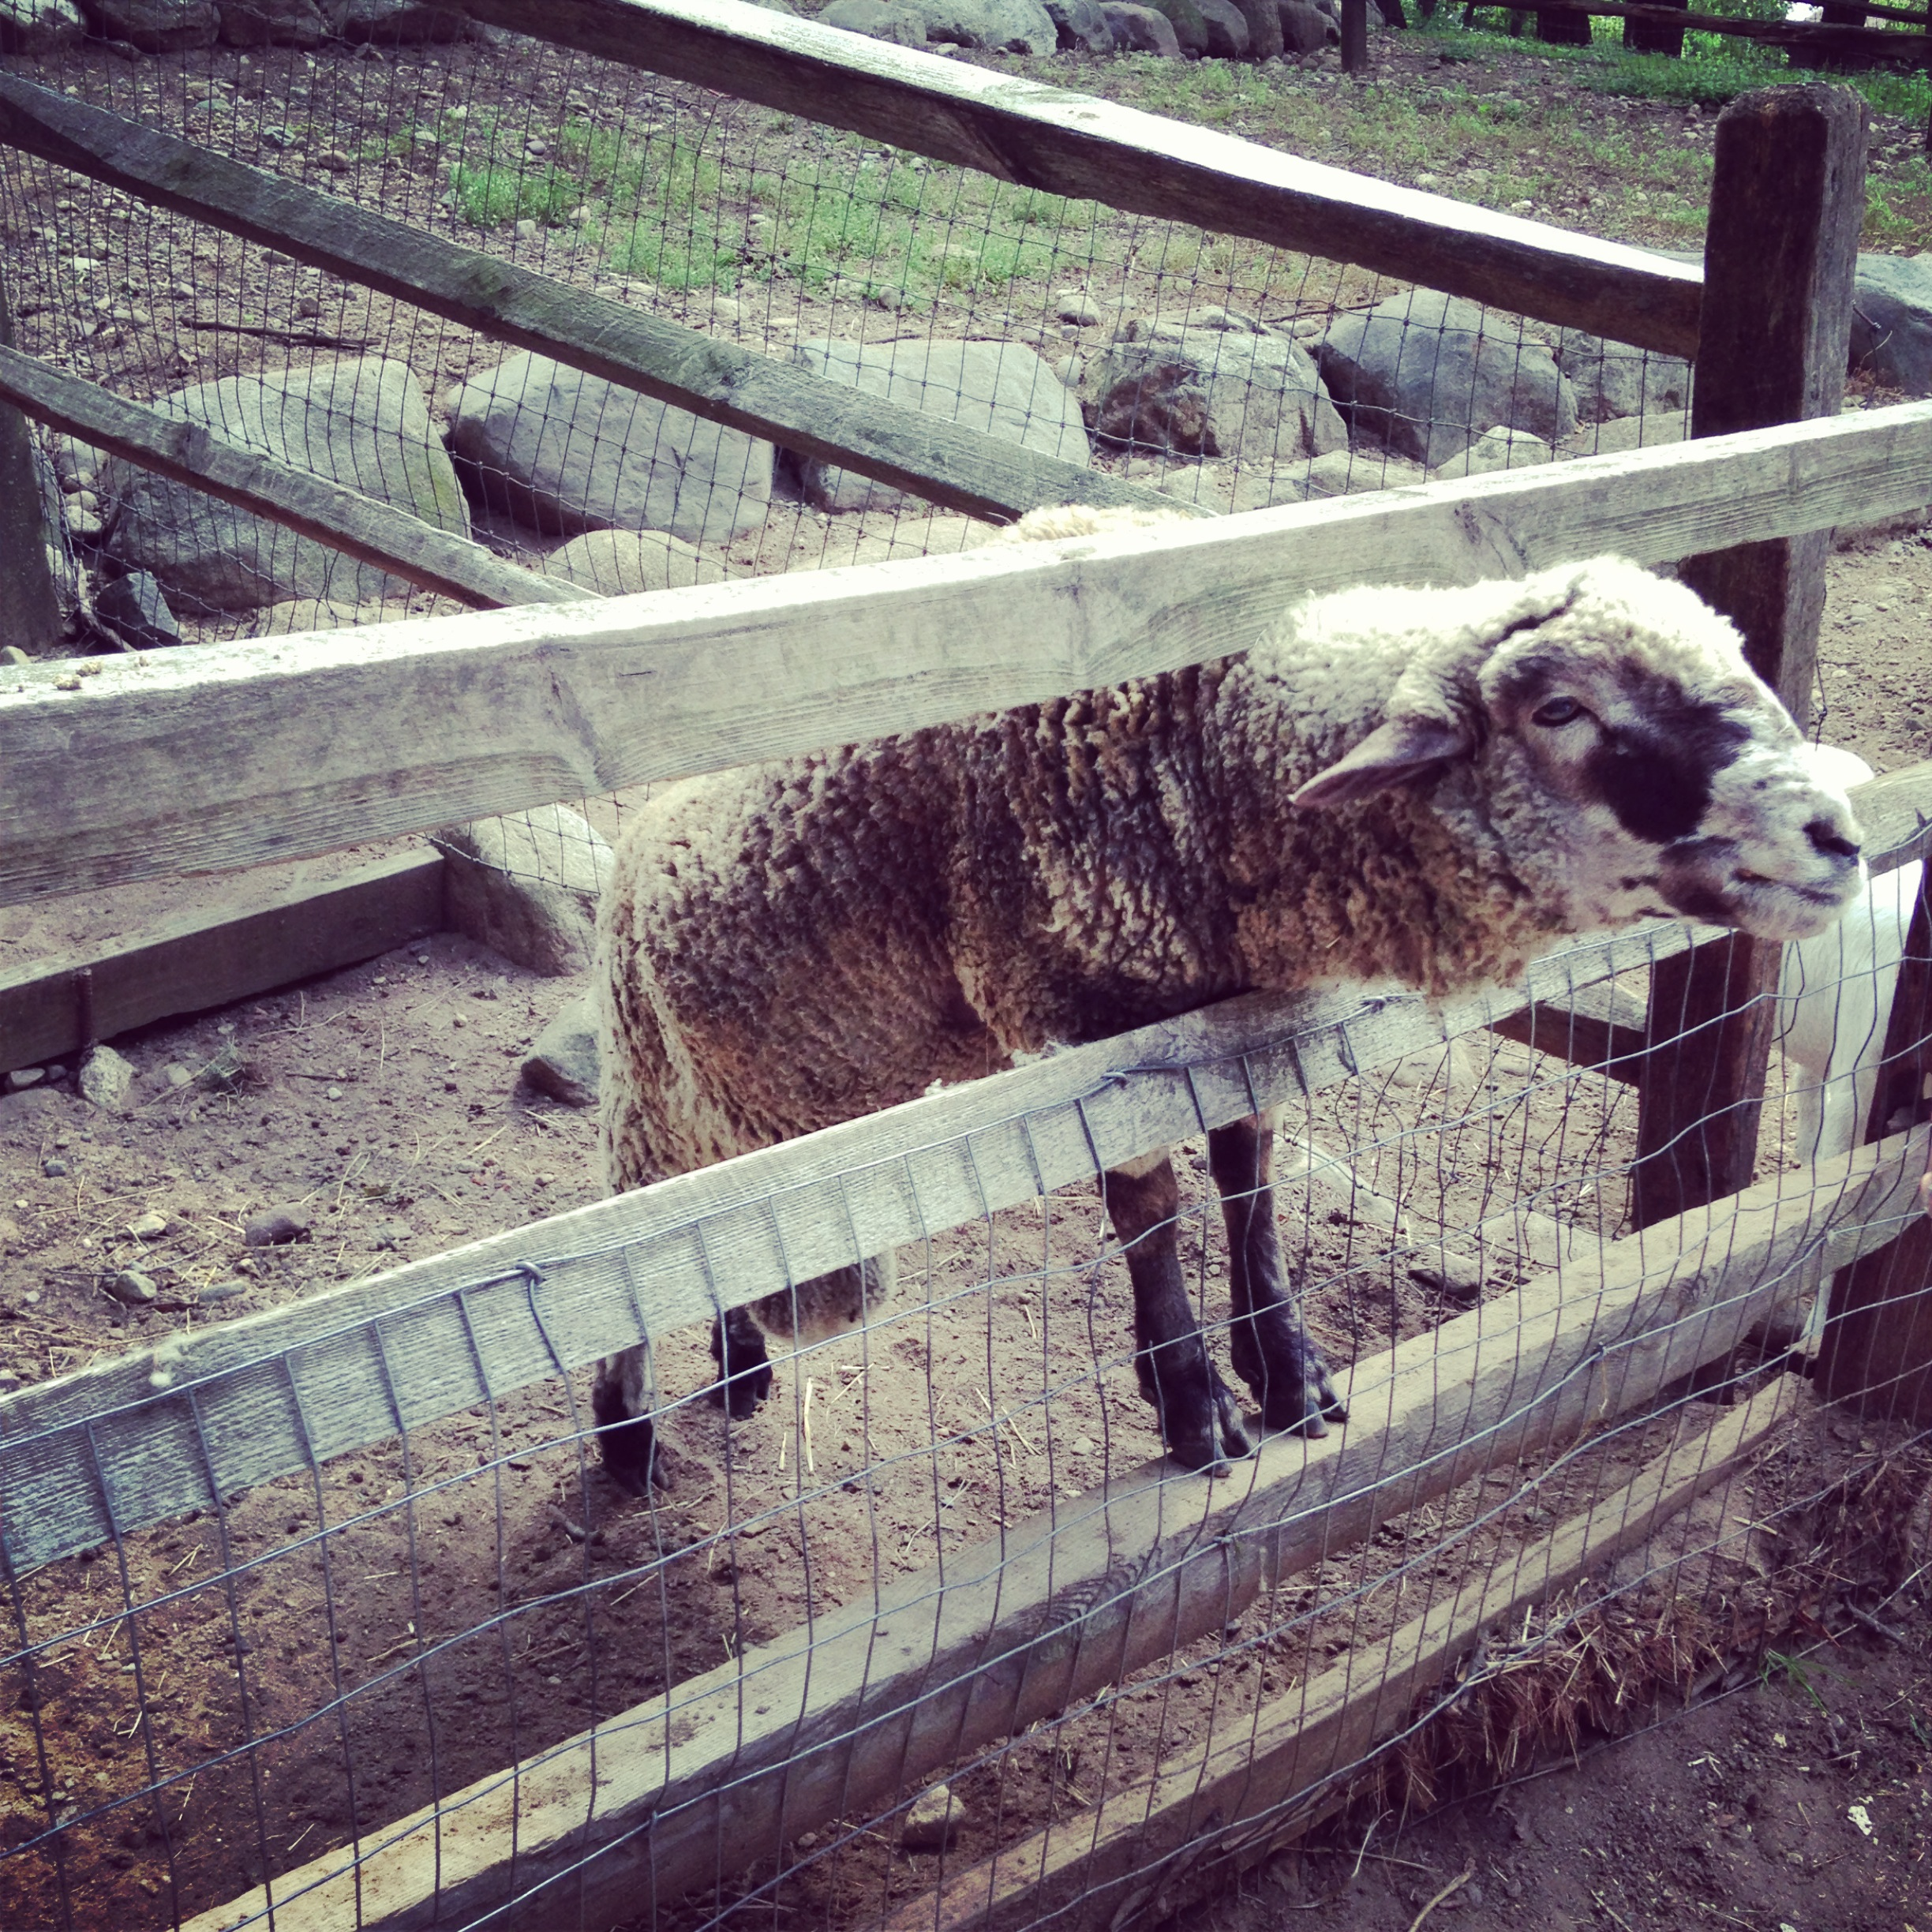 This sheep had the deepest voice ever...creepy